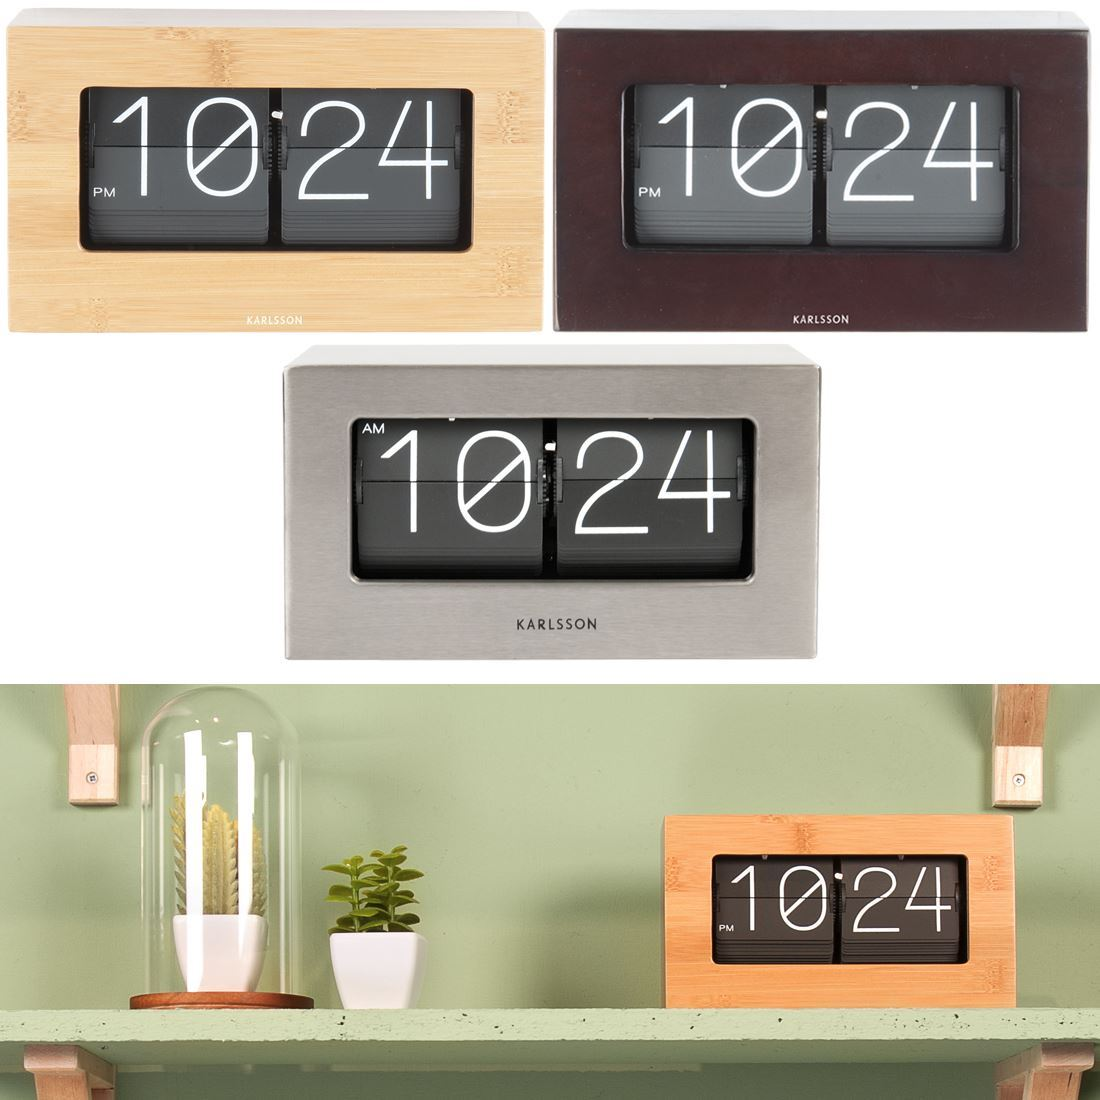 Karlsson flip box home or office 21cm mantel table shelf clock smooth lines minimal design an element of quirk and a touch of retro chic thats what youre getting with this karlsson boxed flip clock amipublicfo Choice Image